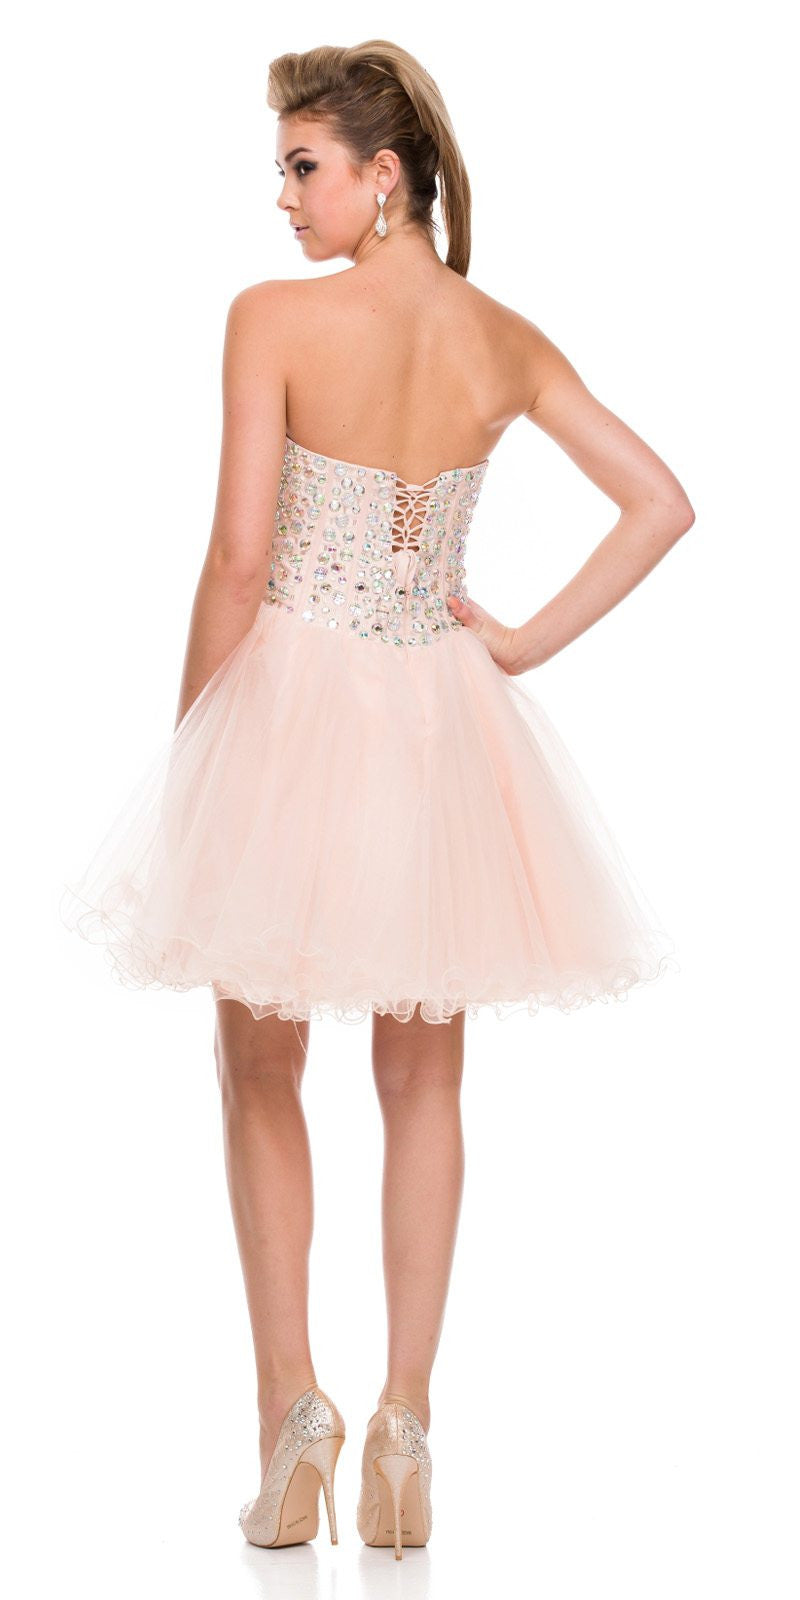 Strapless Rhinestone Embellished Bodice Short Prom Dress Nude